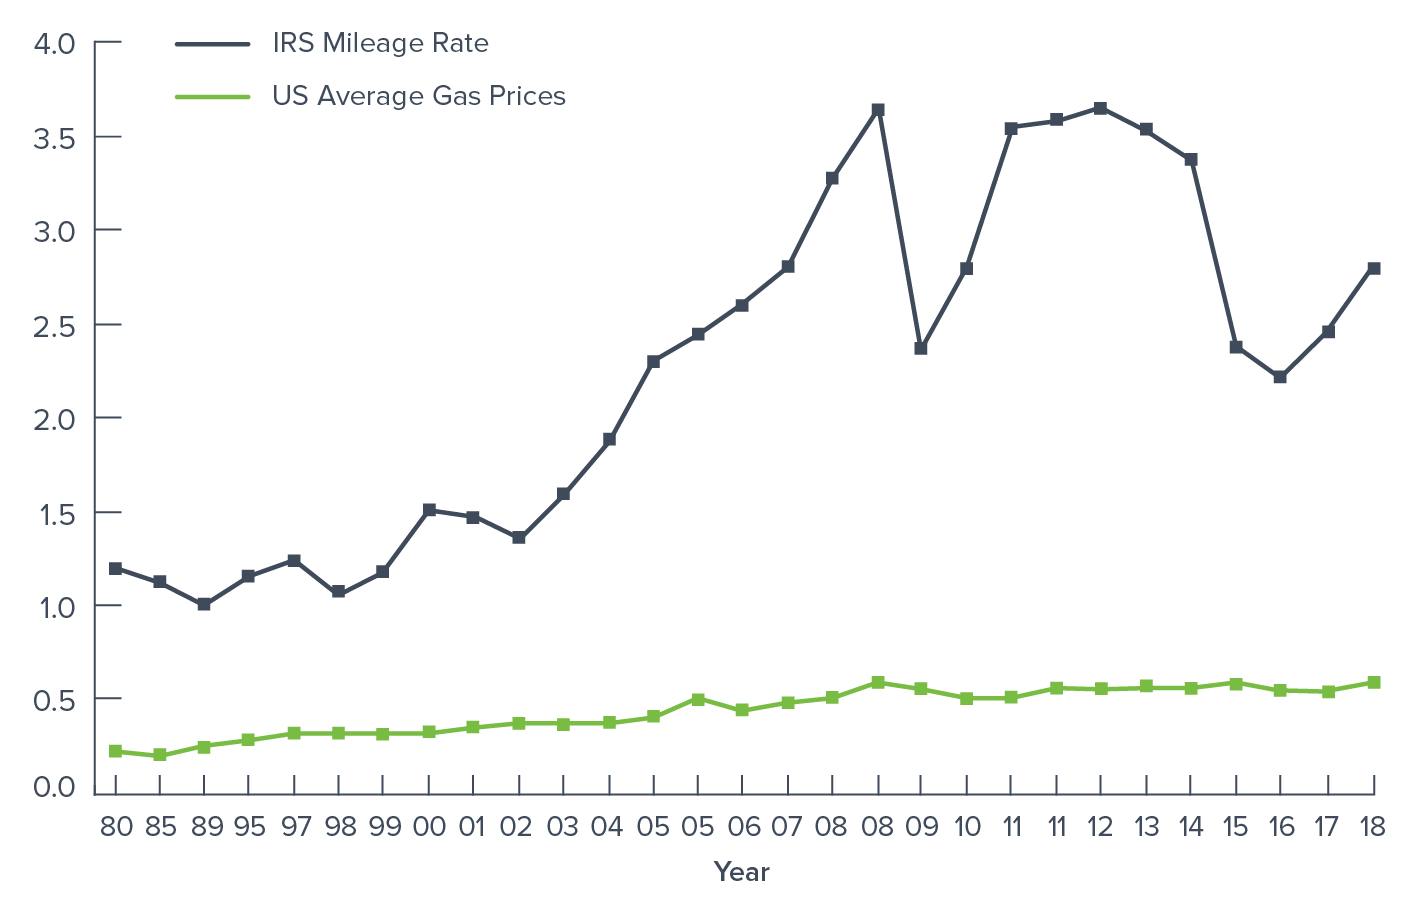 IRS Mileage Rate History and Historical Gas Prices